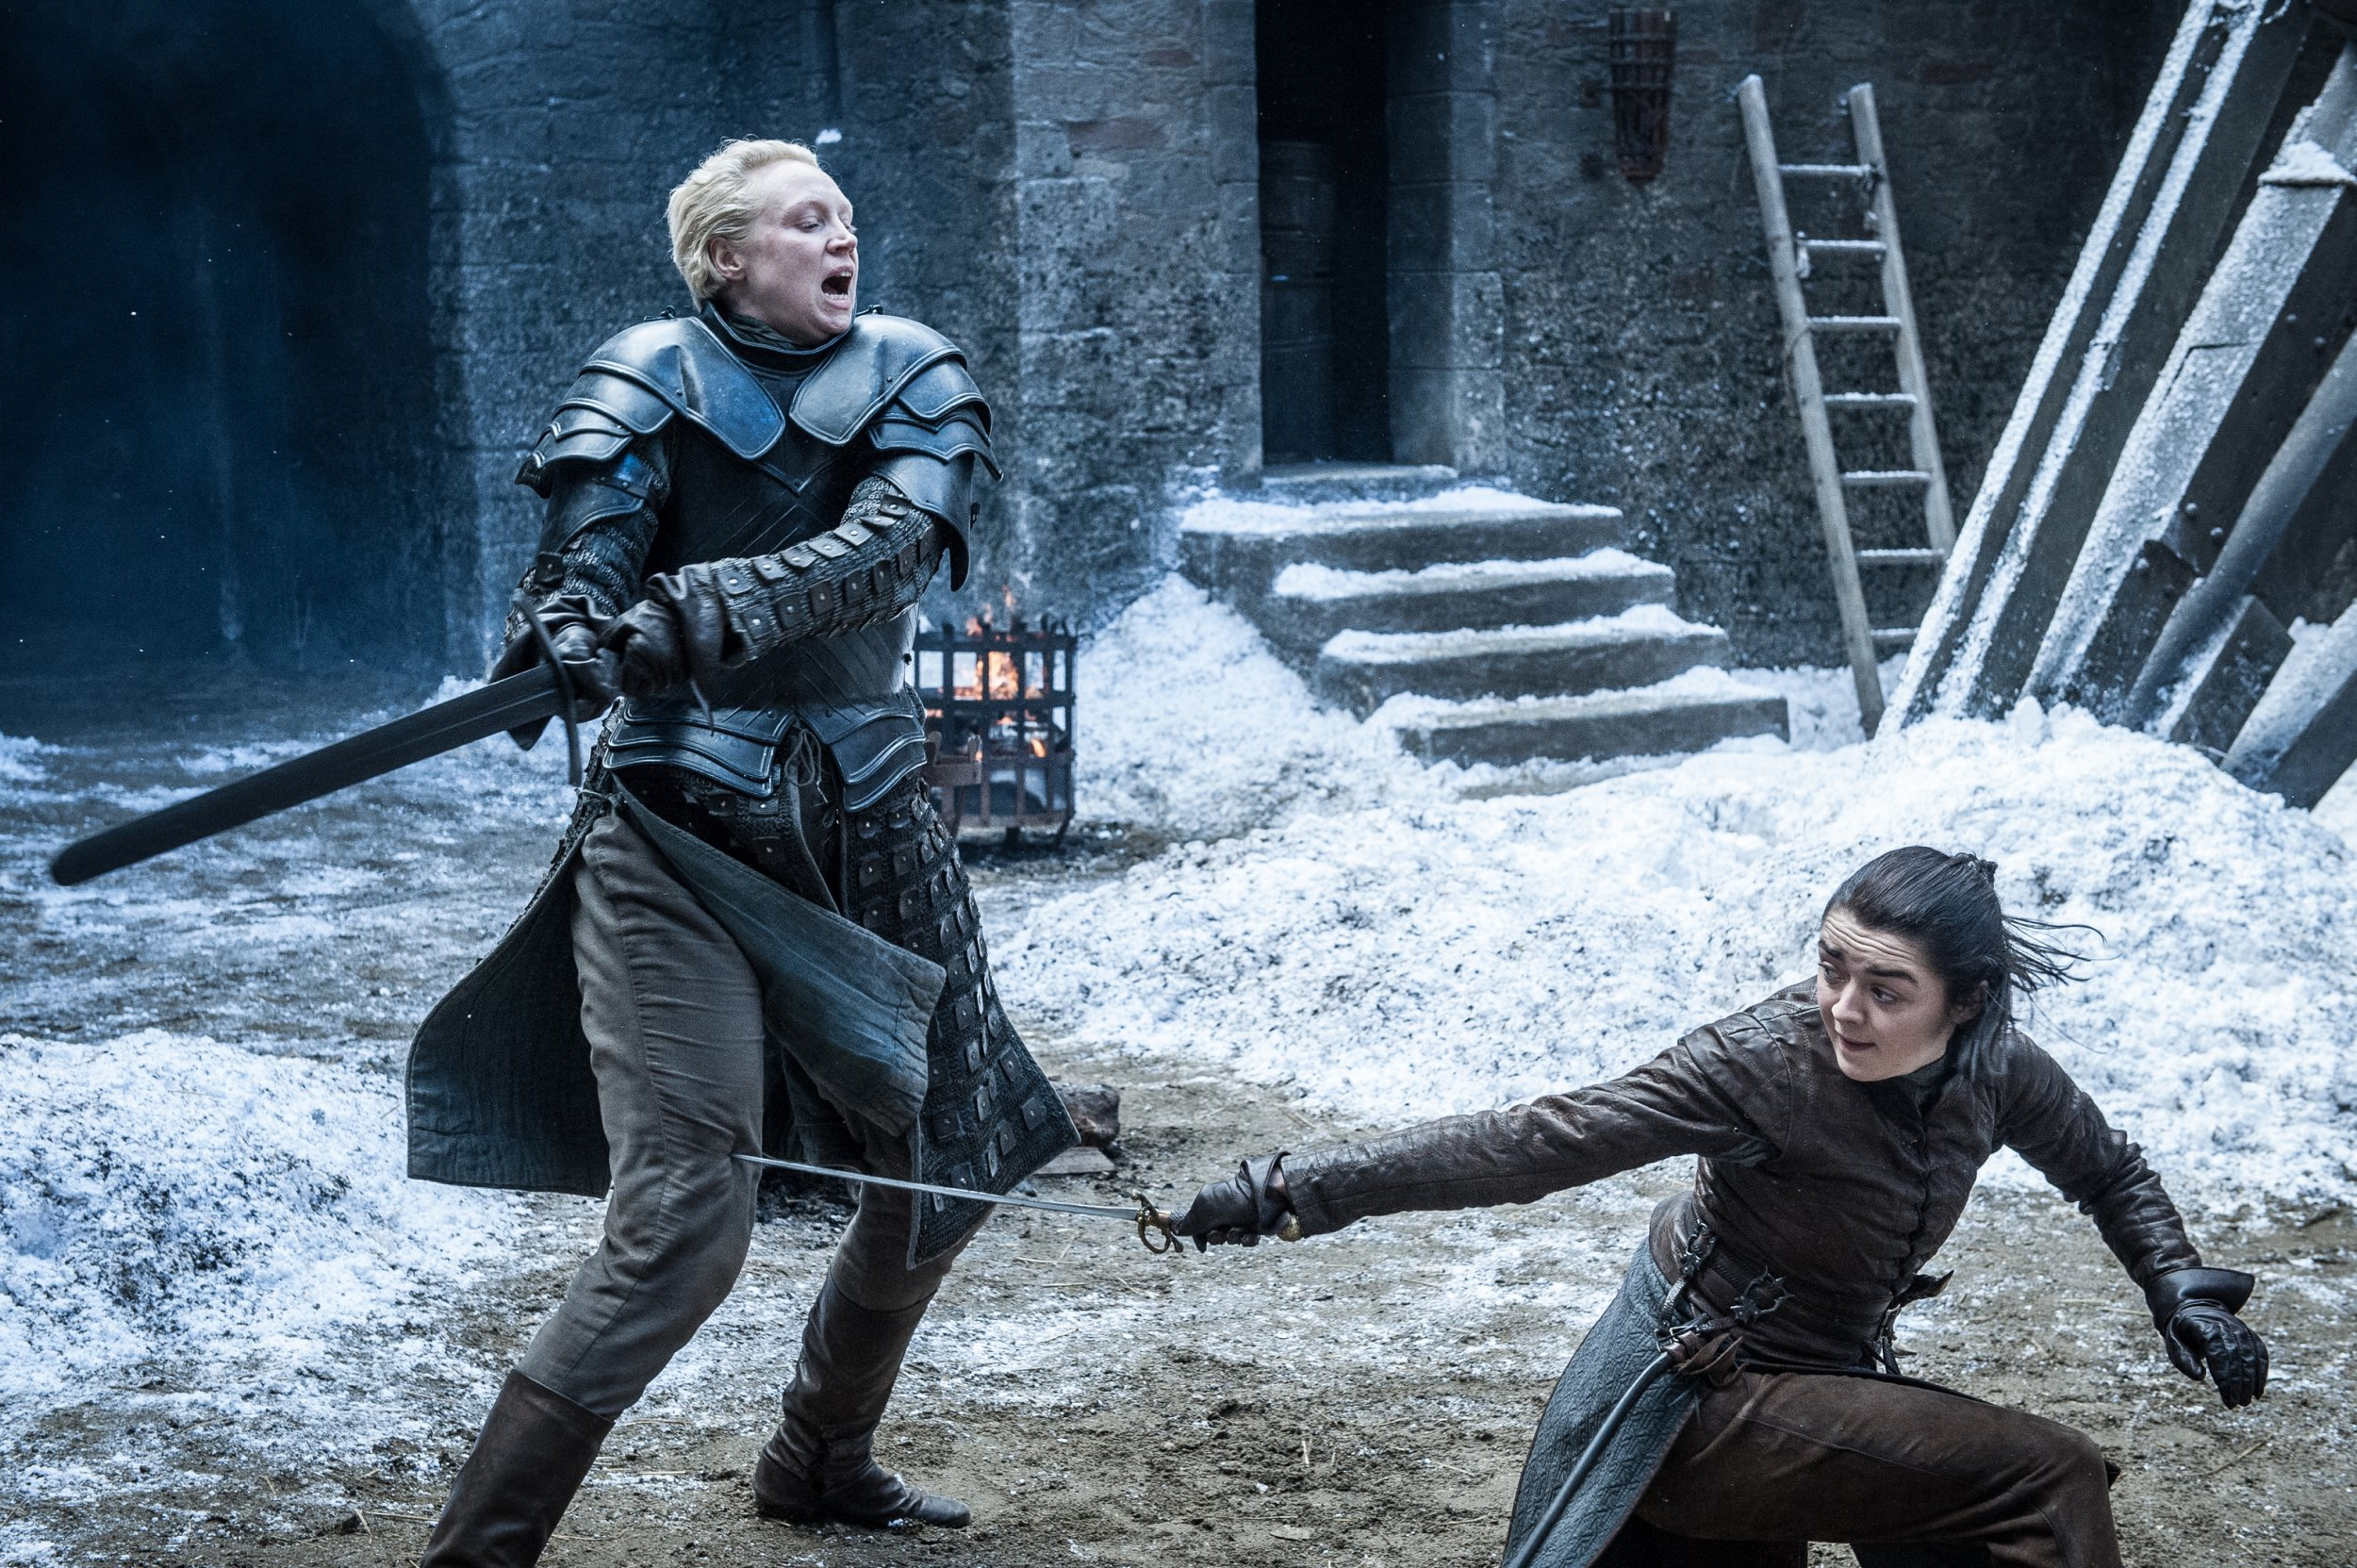 Brienne and Arya sword fight